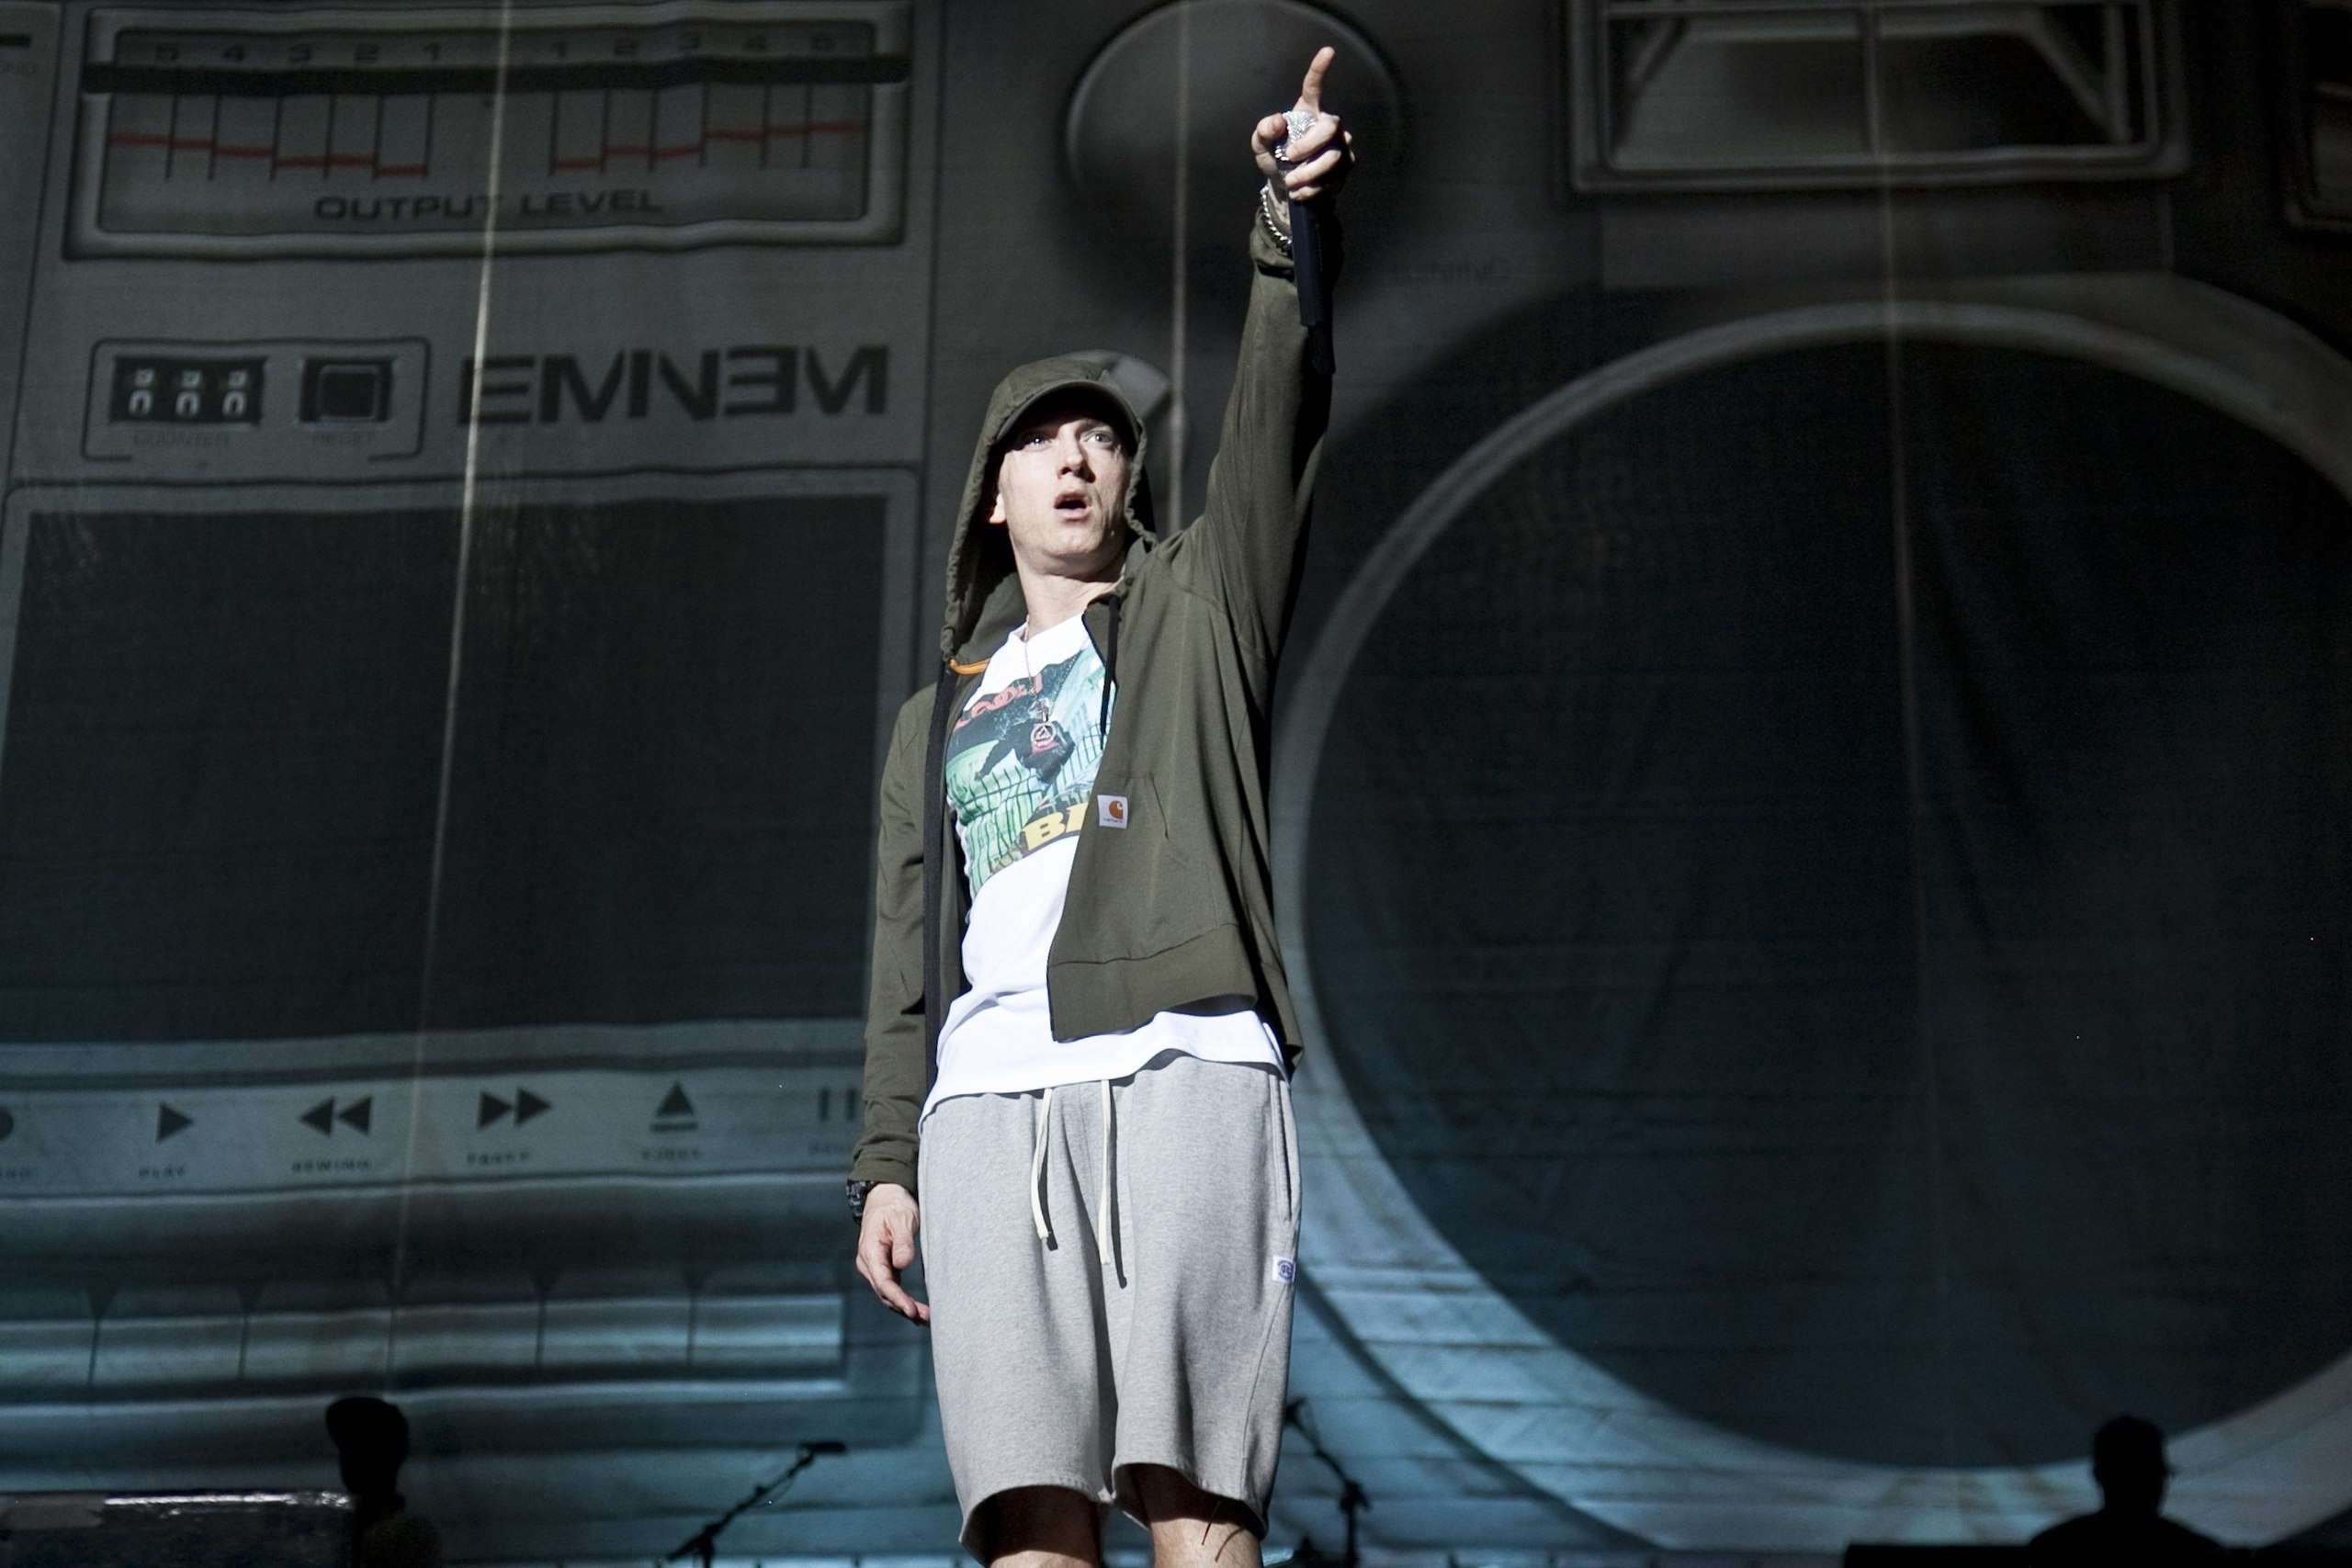 100 - Eminem feat Rihanna Warm up for the monster tour. Thank you Lollapalooza 2014